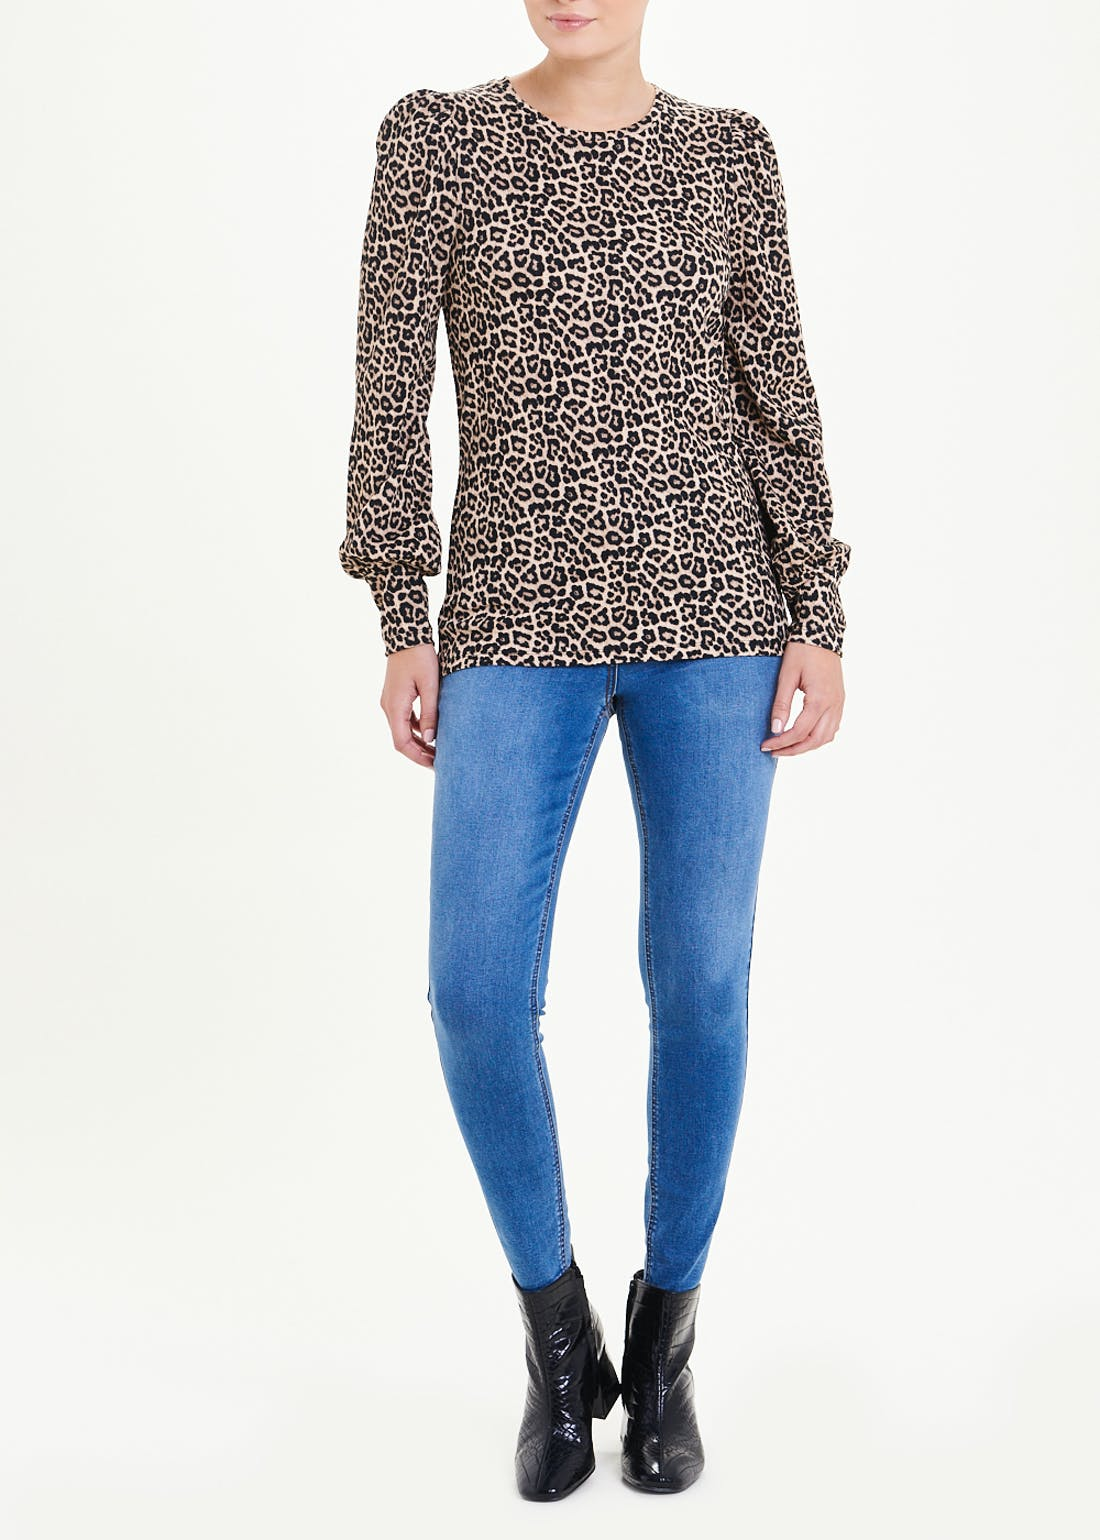 Long Sleeve Leopard Print Textured Top